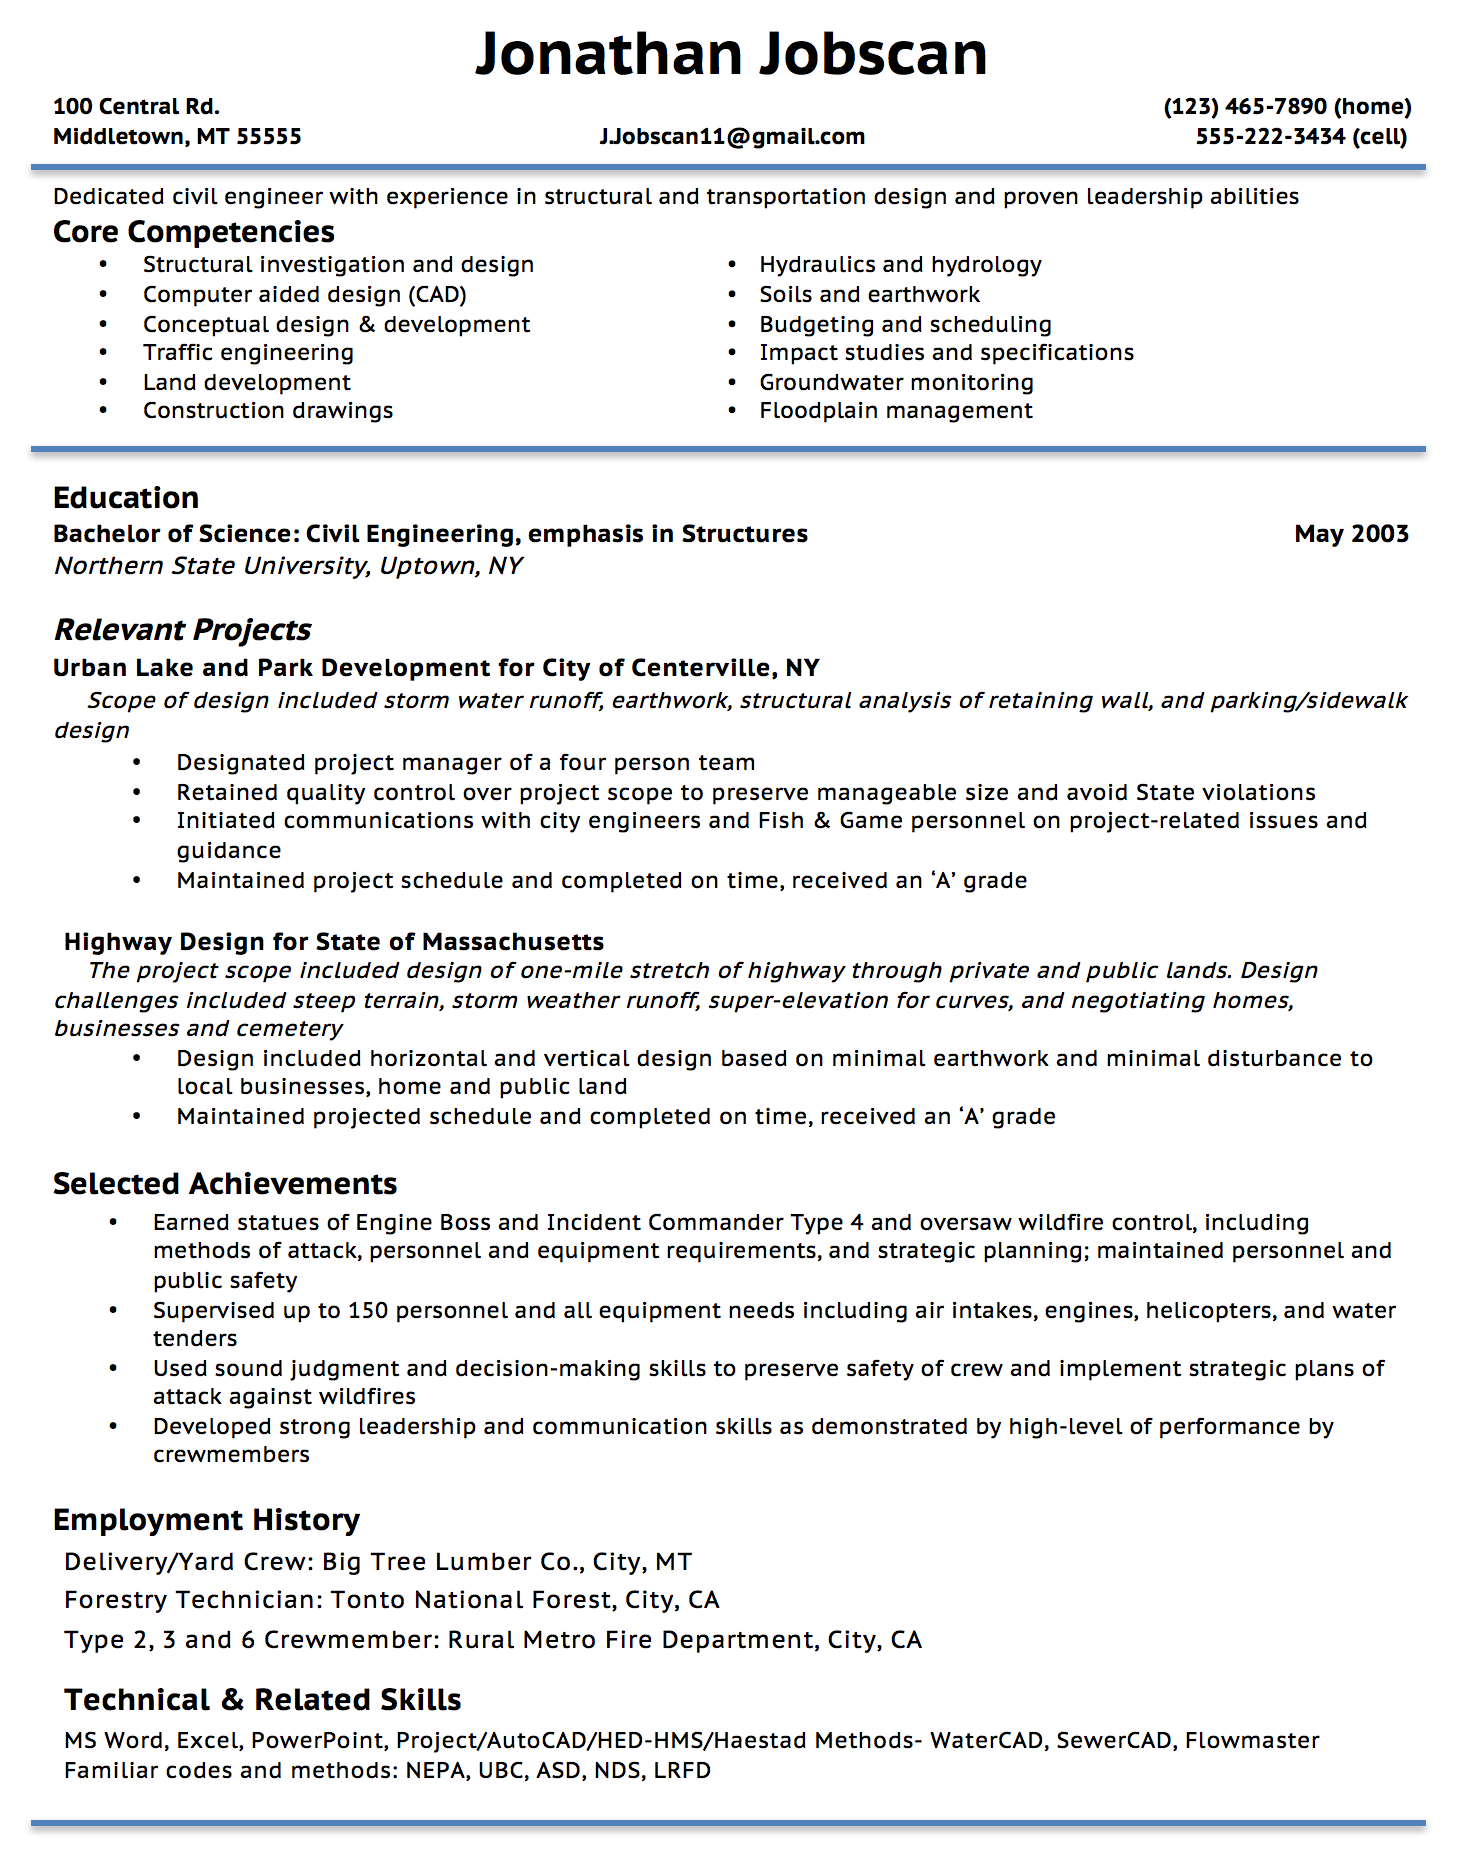 Opposenewapstandardsus  Wonderful Resume Writing Guide  Jobscan With Inspiring Example Of A Functional Resume Format With Astounding Email For Resume Also Caregiving Resume In Addition Banking Resumes And Do I Need A Cover Letter For My Resume As Well As Business System Analyst Resume Additionally Sample Legal Resumes From Jobscanco With Opposenewapstandardsus  Inspiring Resume Writing Guide  Jobscan With Astounding Example Of A Functional Resume Format And Wonderful Email For Resume Also Caregiving Resume In Addition Banking Resumes From Jobscanco